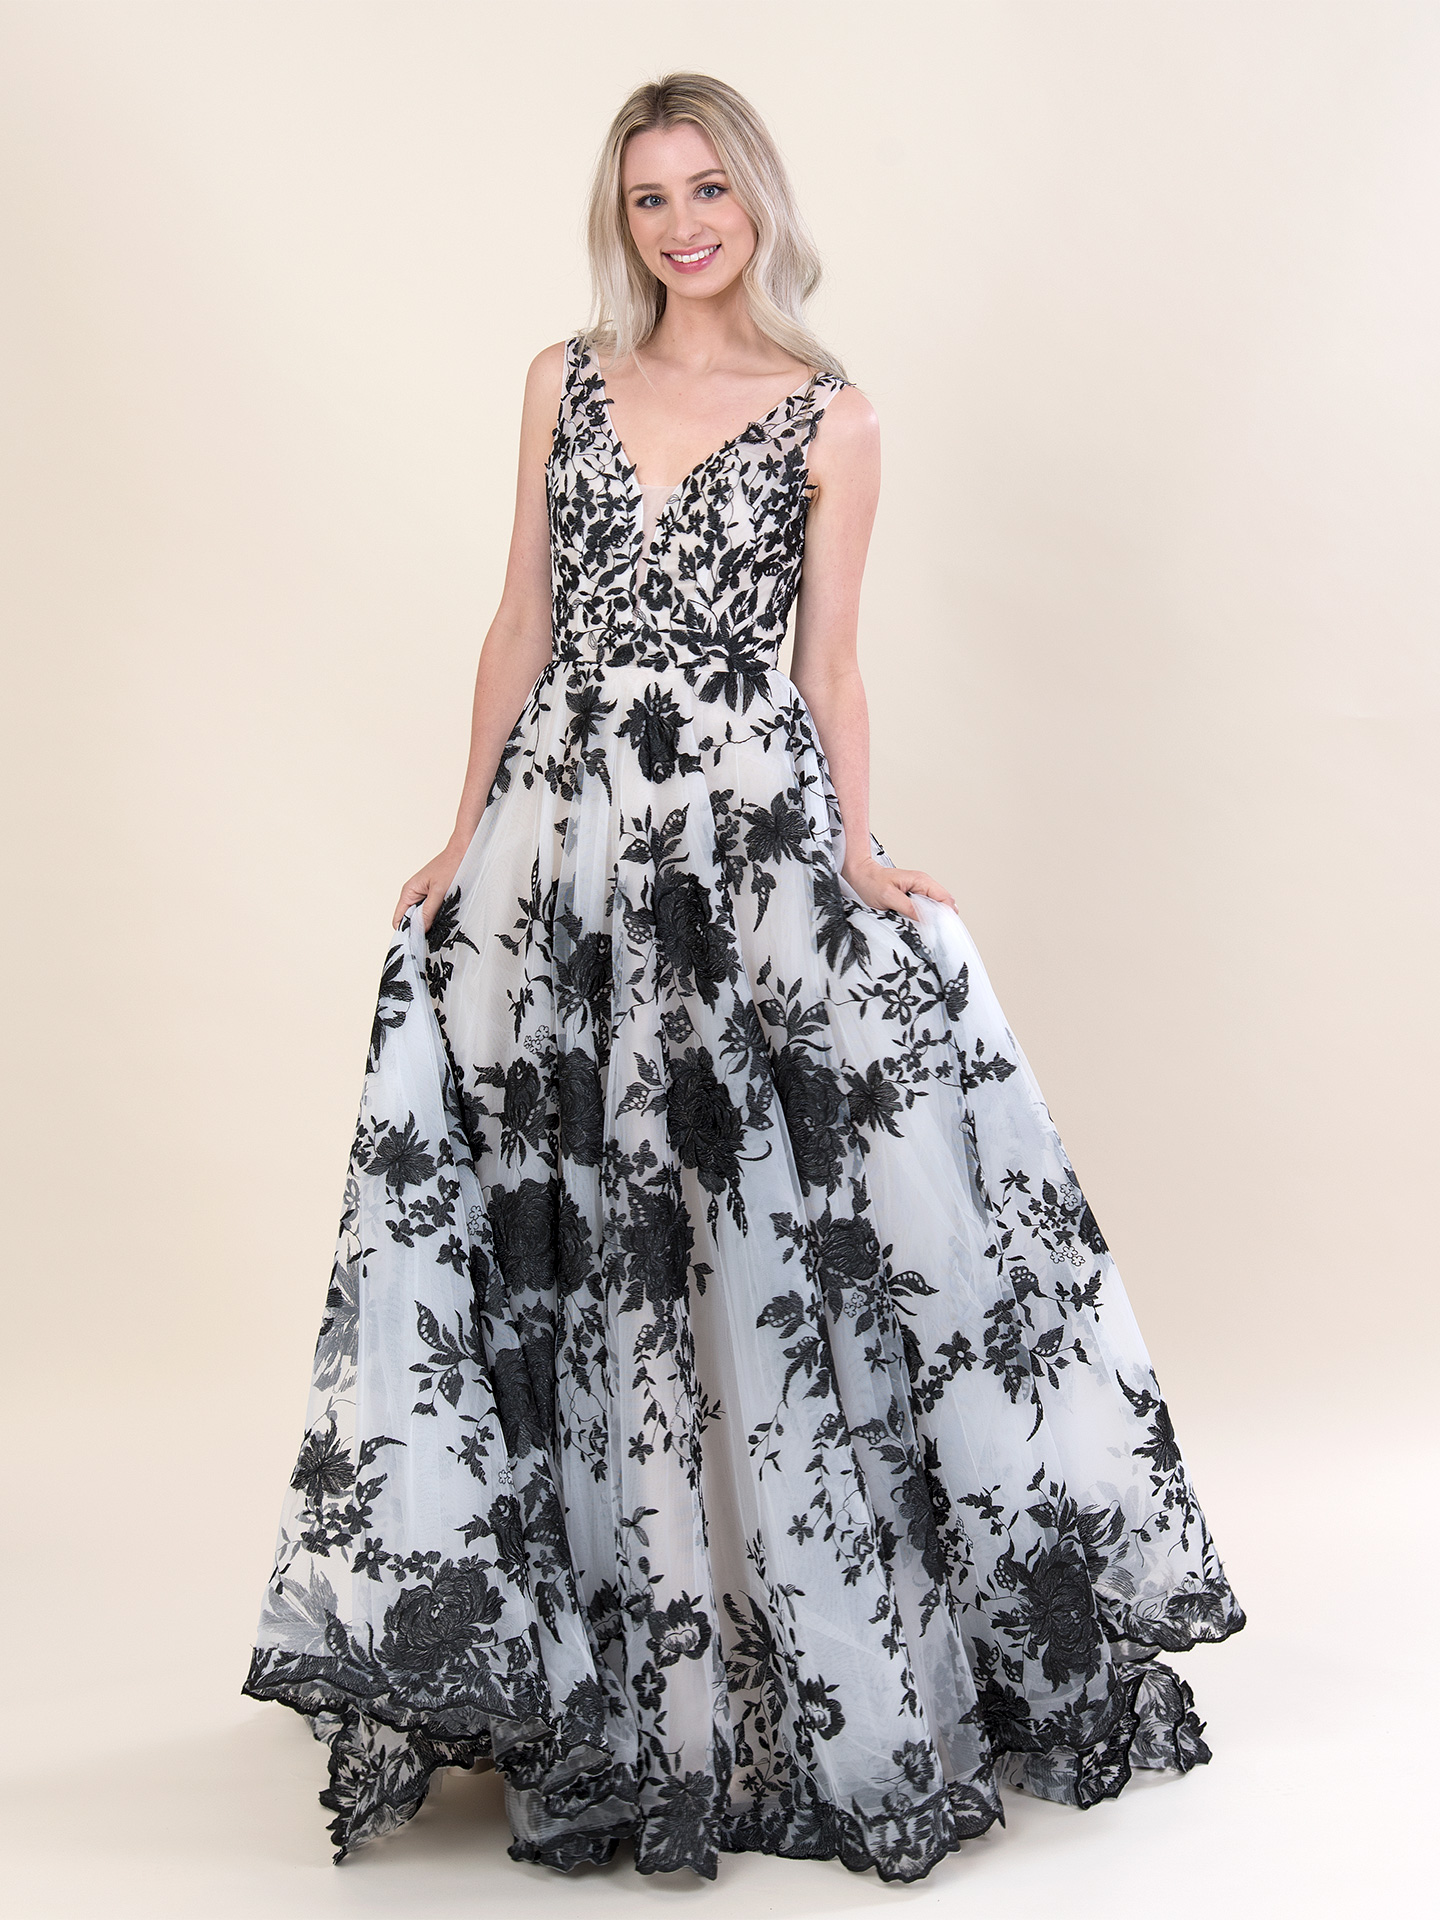 Black lace wedding dress 4078-black